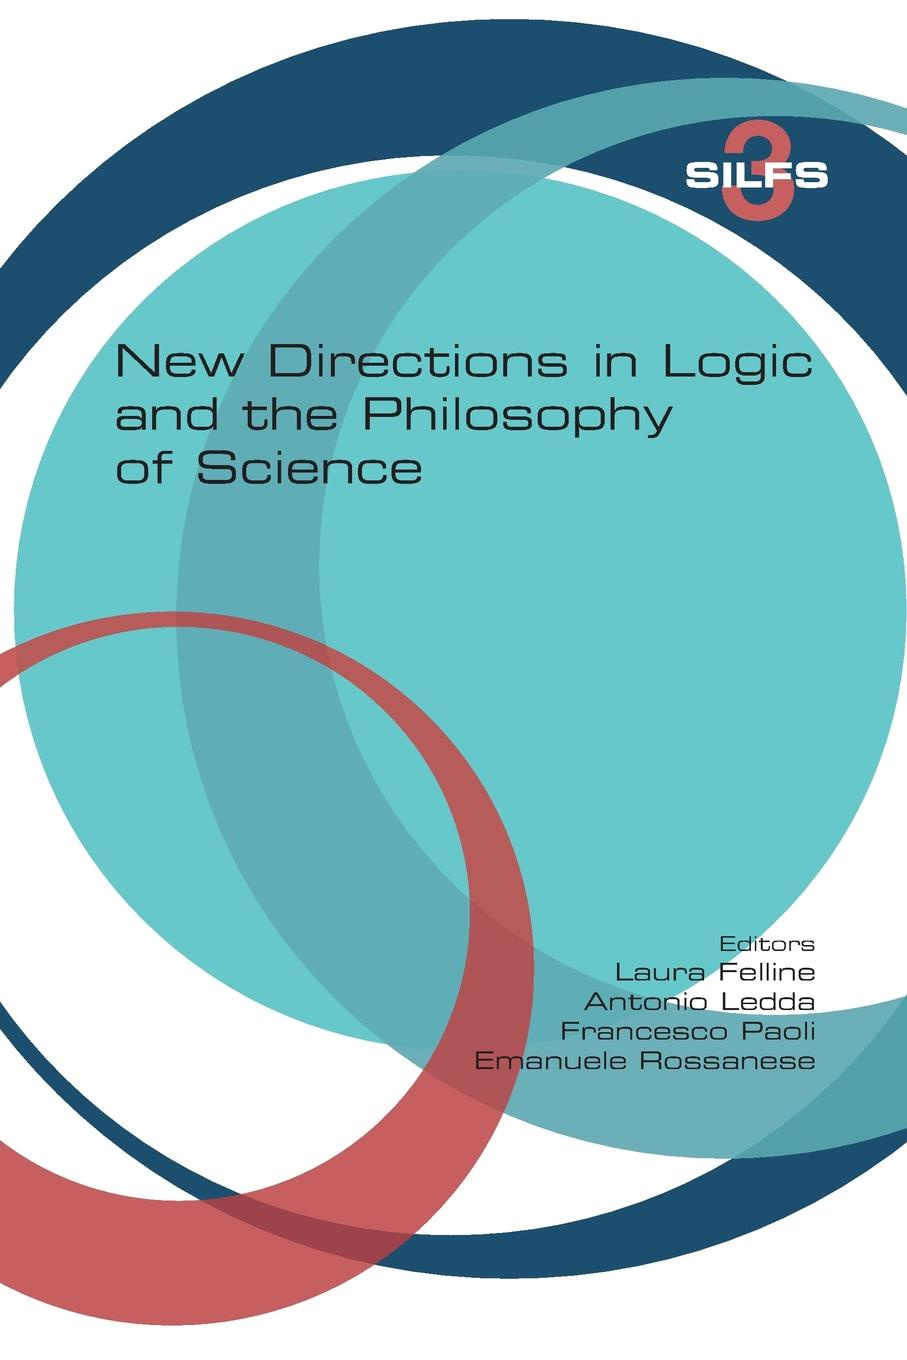 New Directions in Logic and the Philosophy of Science logic methodology and philosophy of science logic and science facing the new technologies